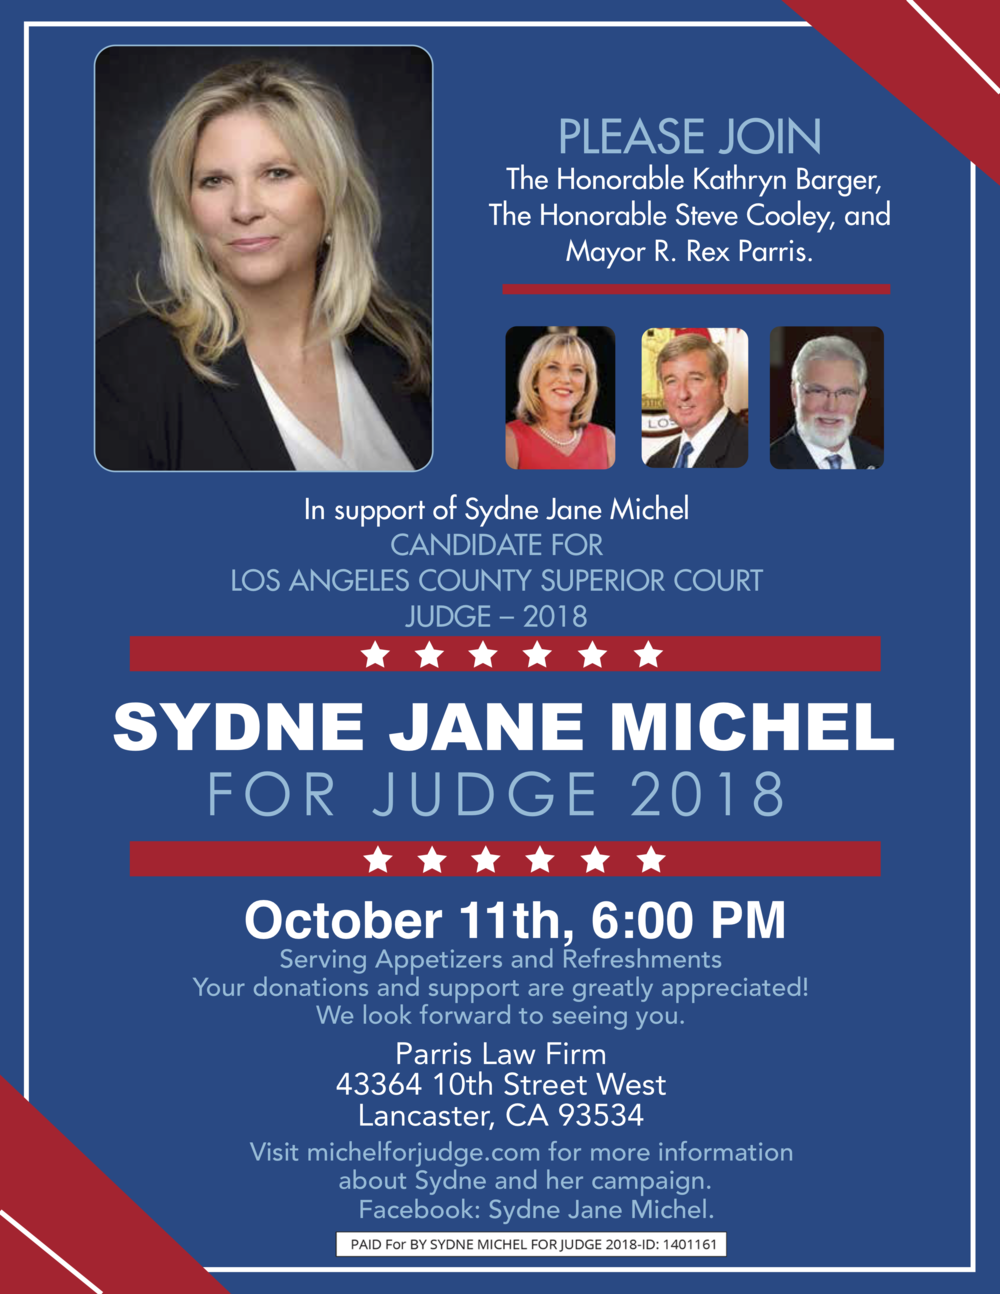 Sydne Jane Michel -The Invitation v5.pdf - For Print.png